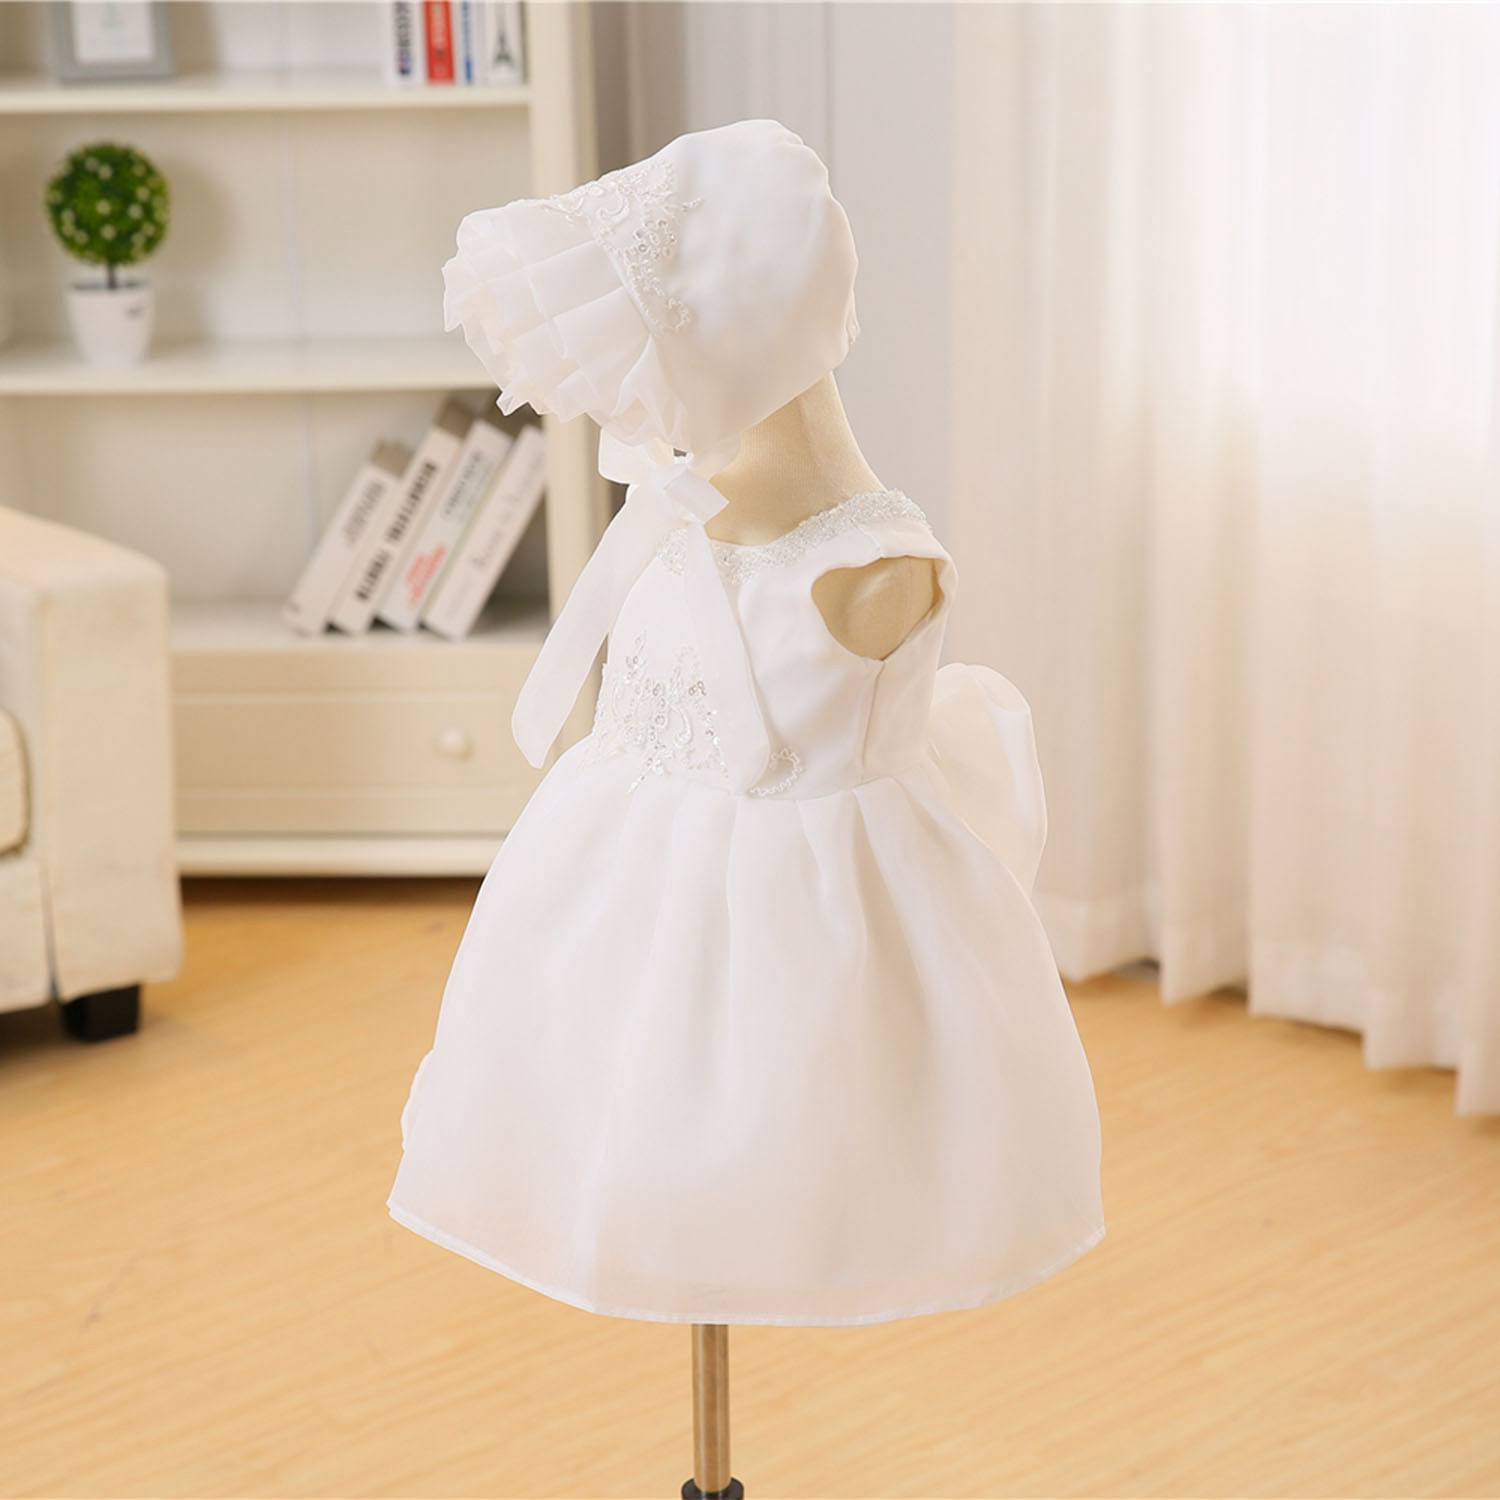 Newborn baby girl dress summer beaded lace childrens clothing wedding formal dress birthday party 3 piece set